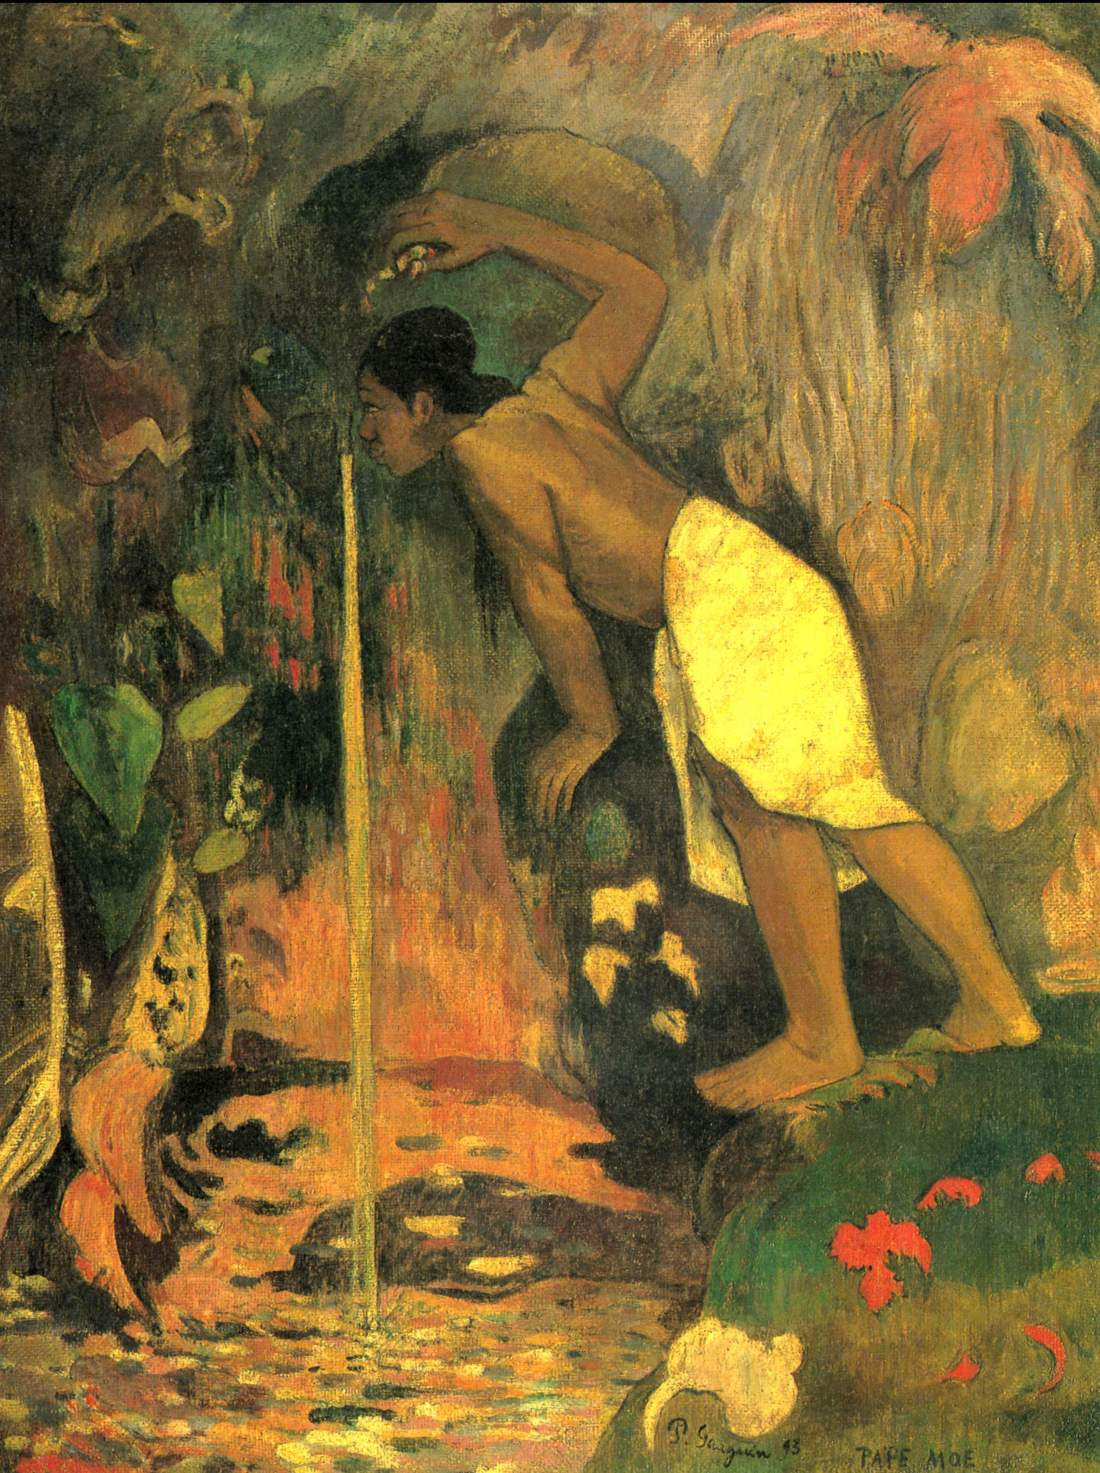 Paul Gauguin, Mysterious Waters (Pape Moe), 1893.